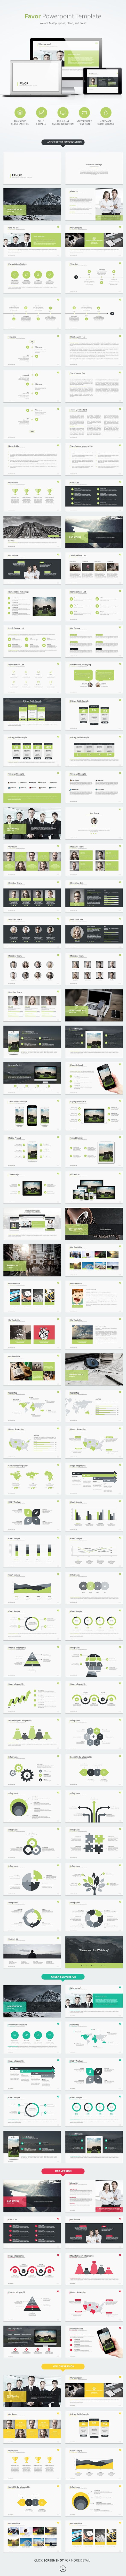 Favor - PowerPoint Presentation Template - Business PowerPoint Templates